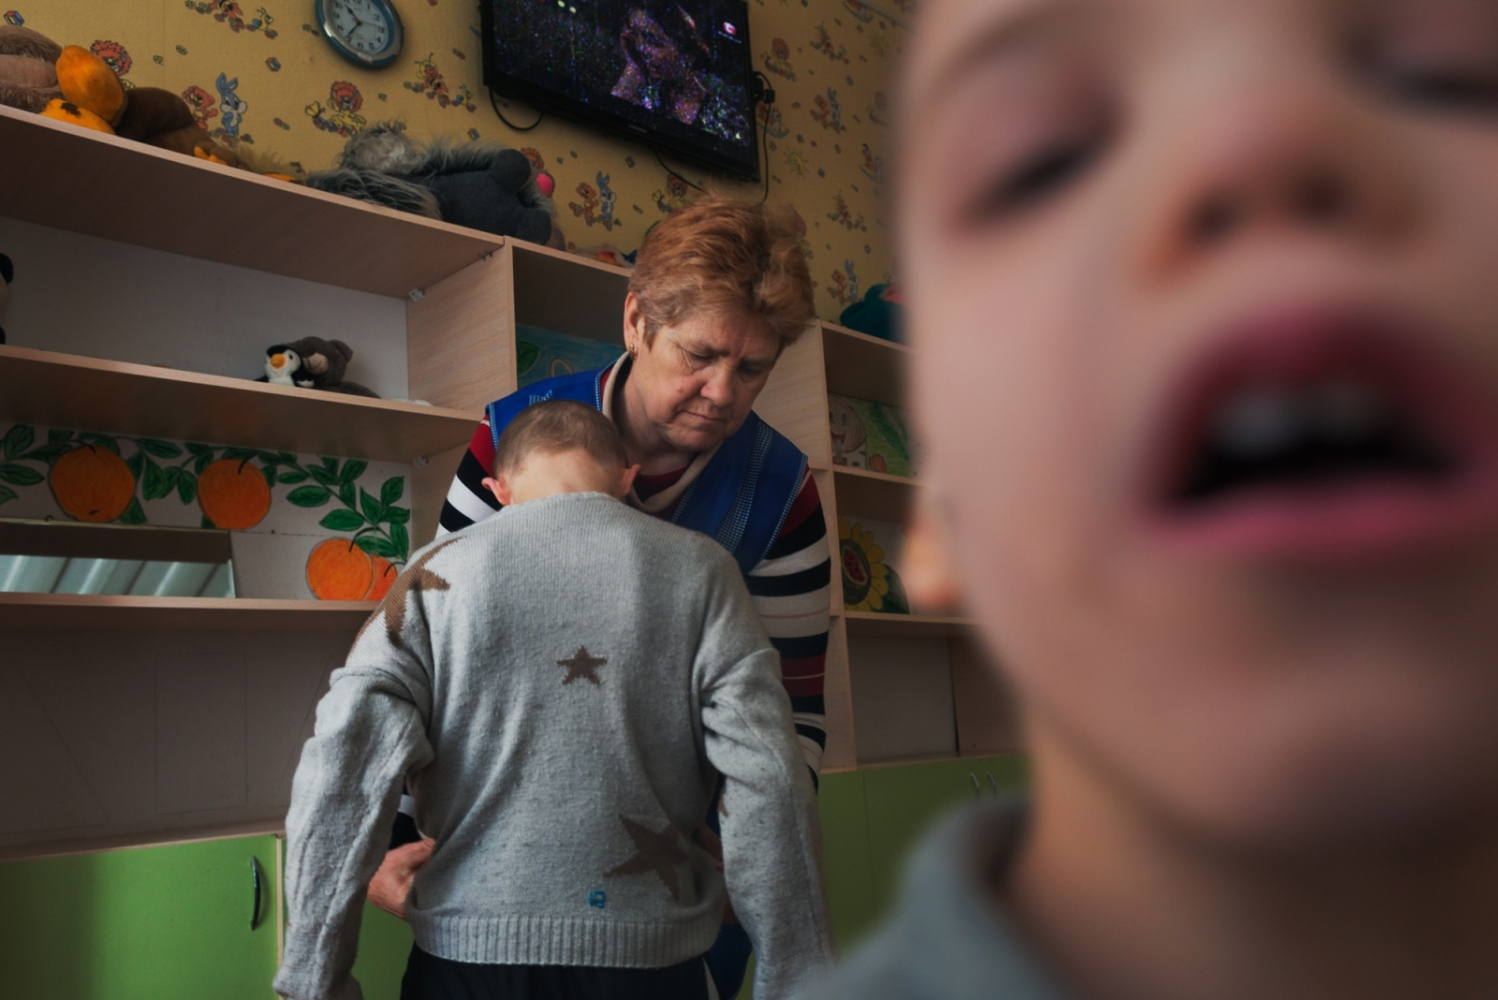 A nanny changes a boy after he urinated himself. The majority of the nannies carry out their duties in a matter of fact way, offering little in the way of compassion.